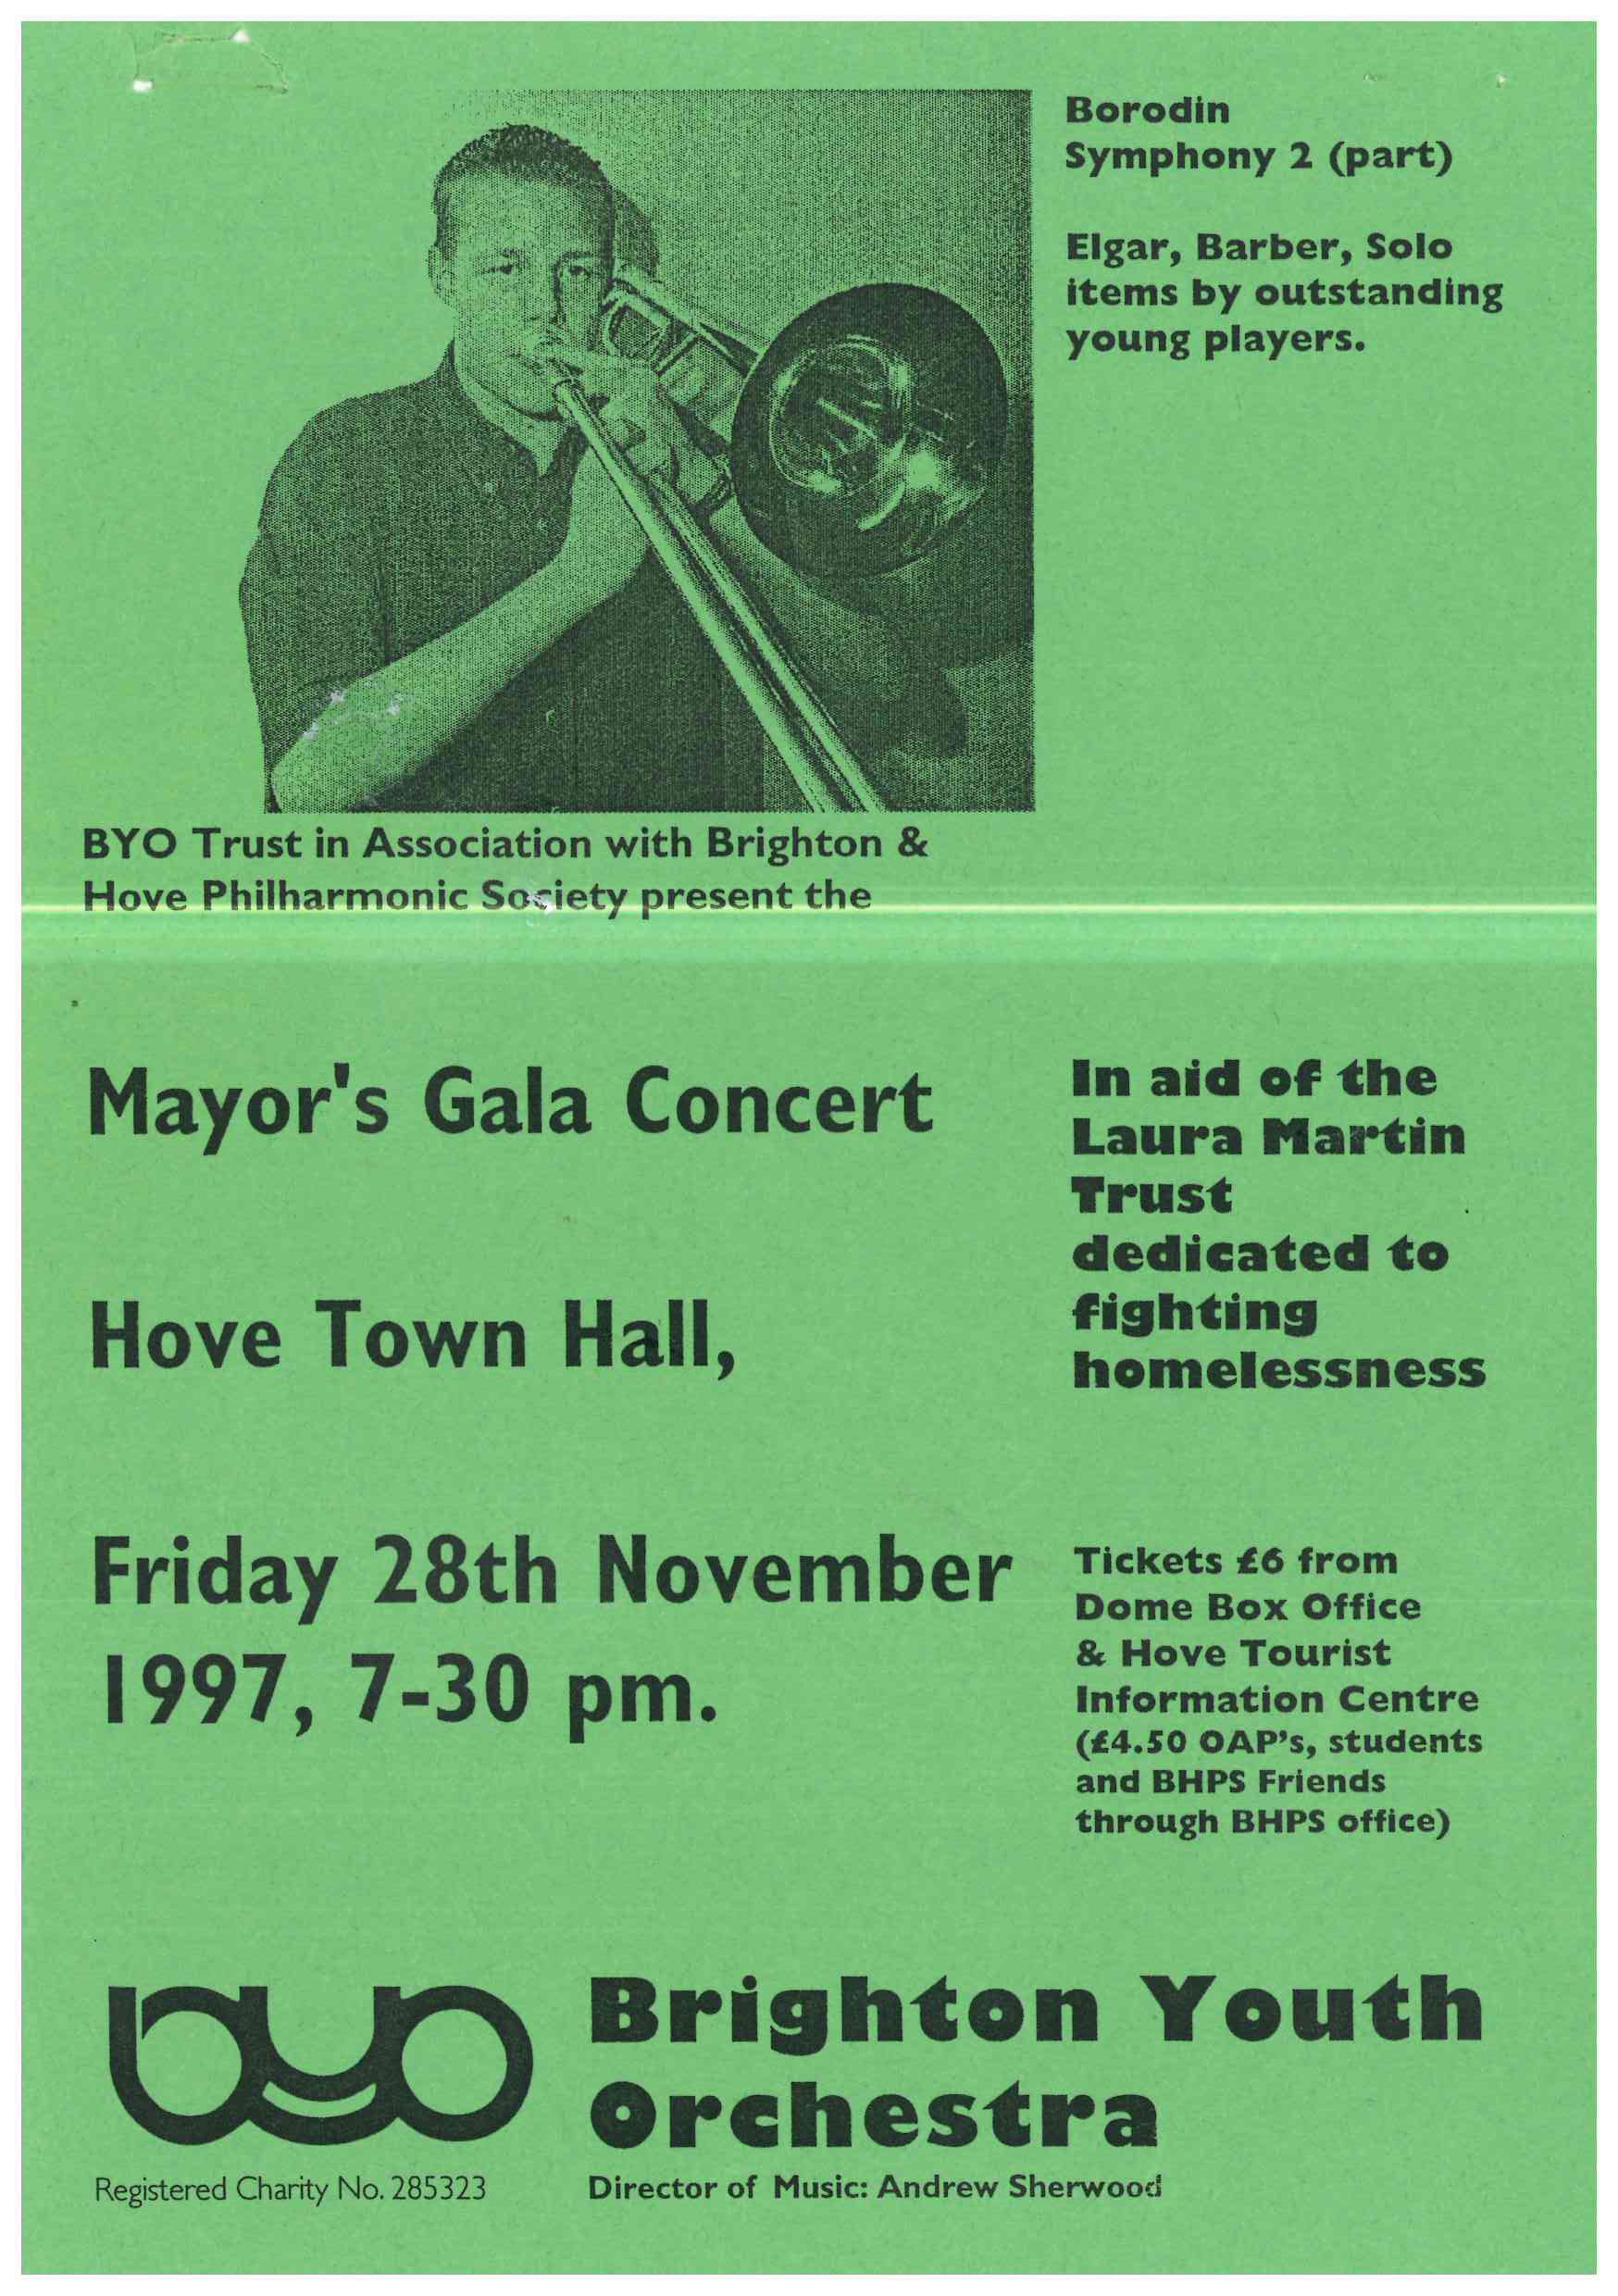 00283-BYO Hove Town Hall, 28th November 1997.jpg